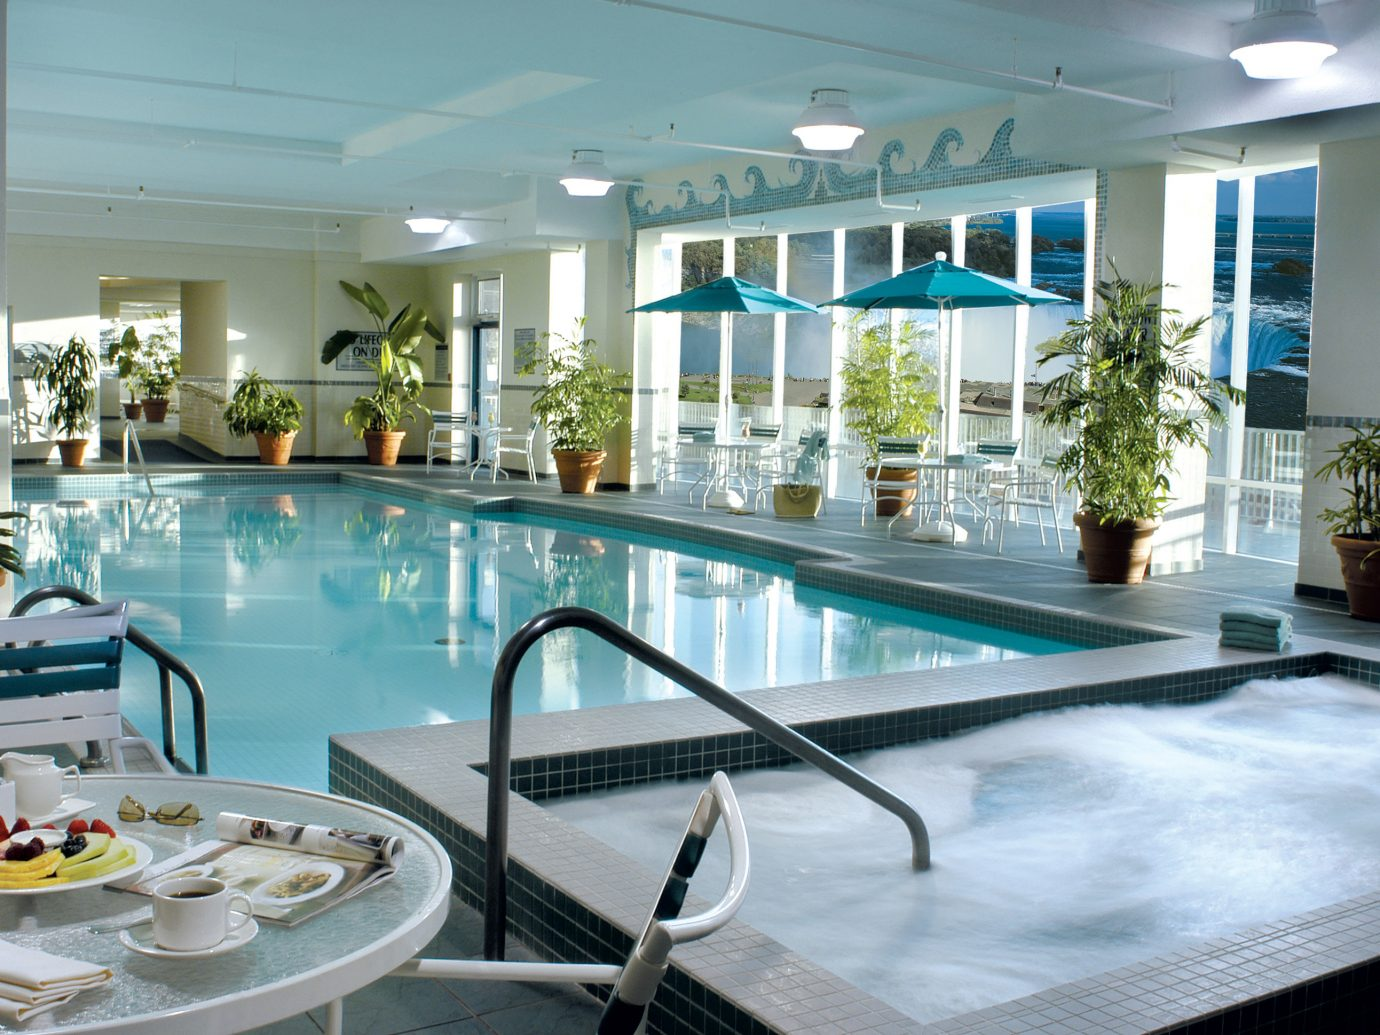 Hotels table indoor swimming pool property ceiling leisure window leisure centre Resort real estate apartment condominium Dining interior design hotel estate amenity resort town penthouse apartment dining table